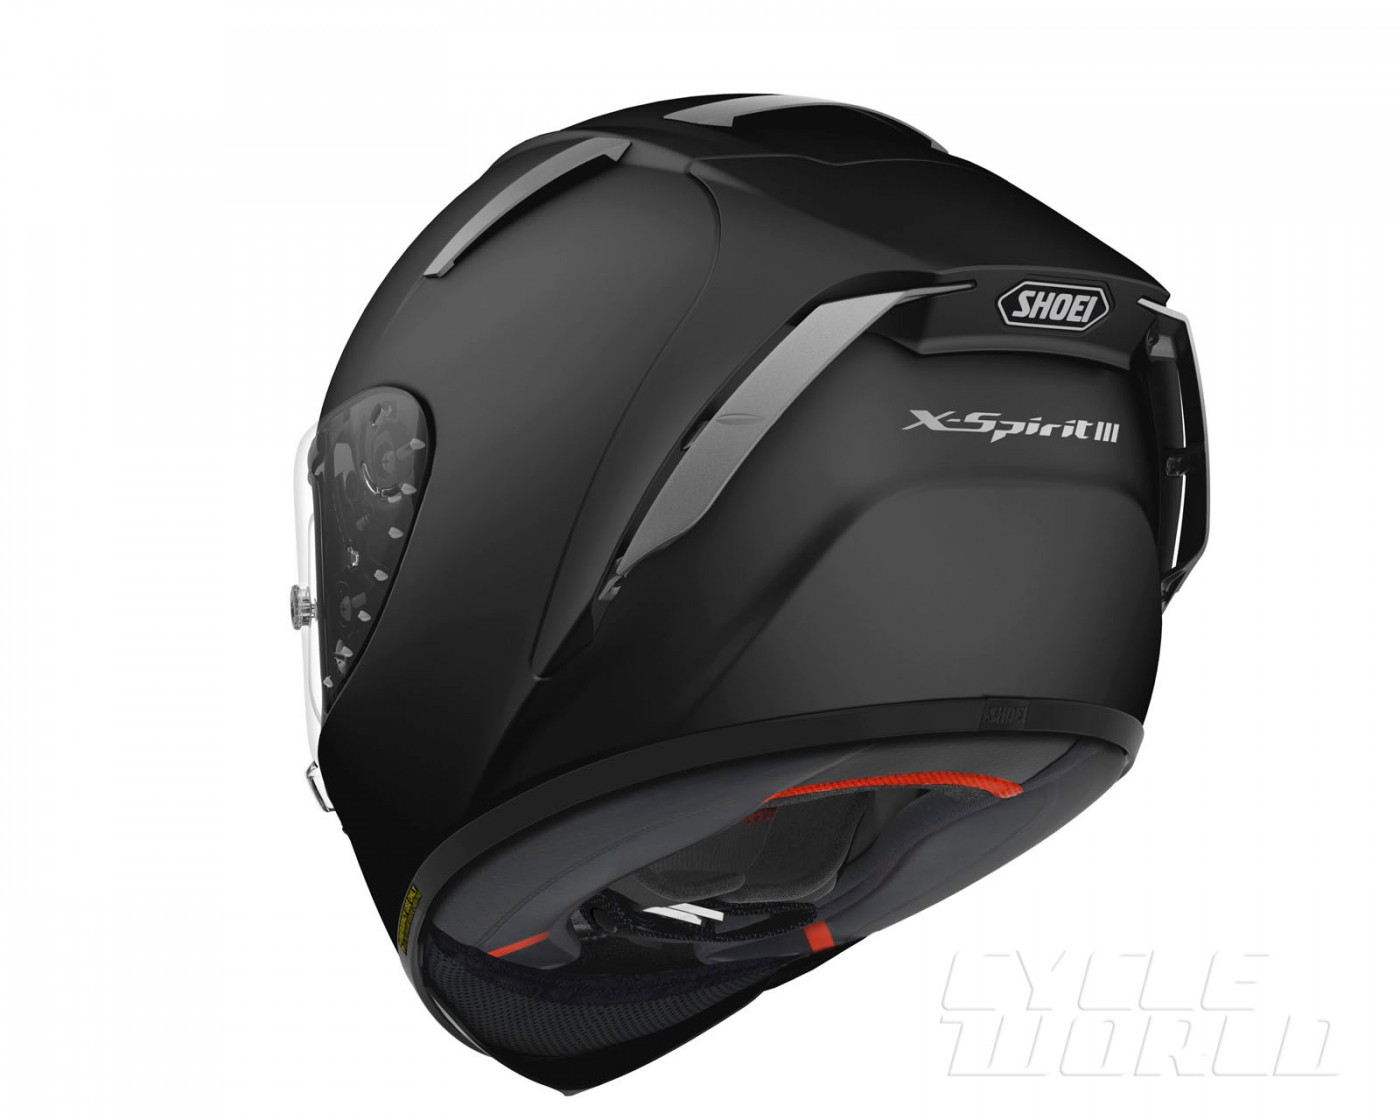 Shoei-X-Spirit-III-MatteBlack_BackTiltX-SPIRIT-III